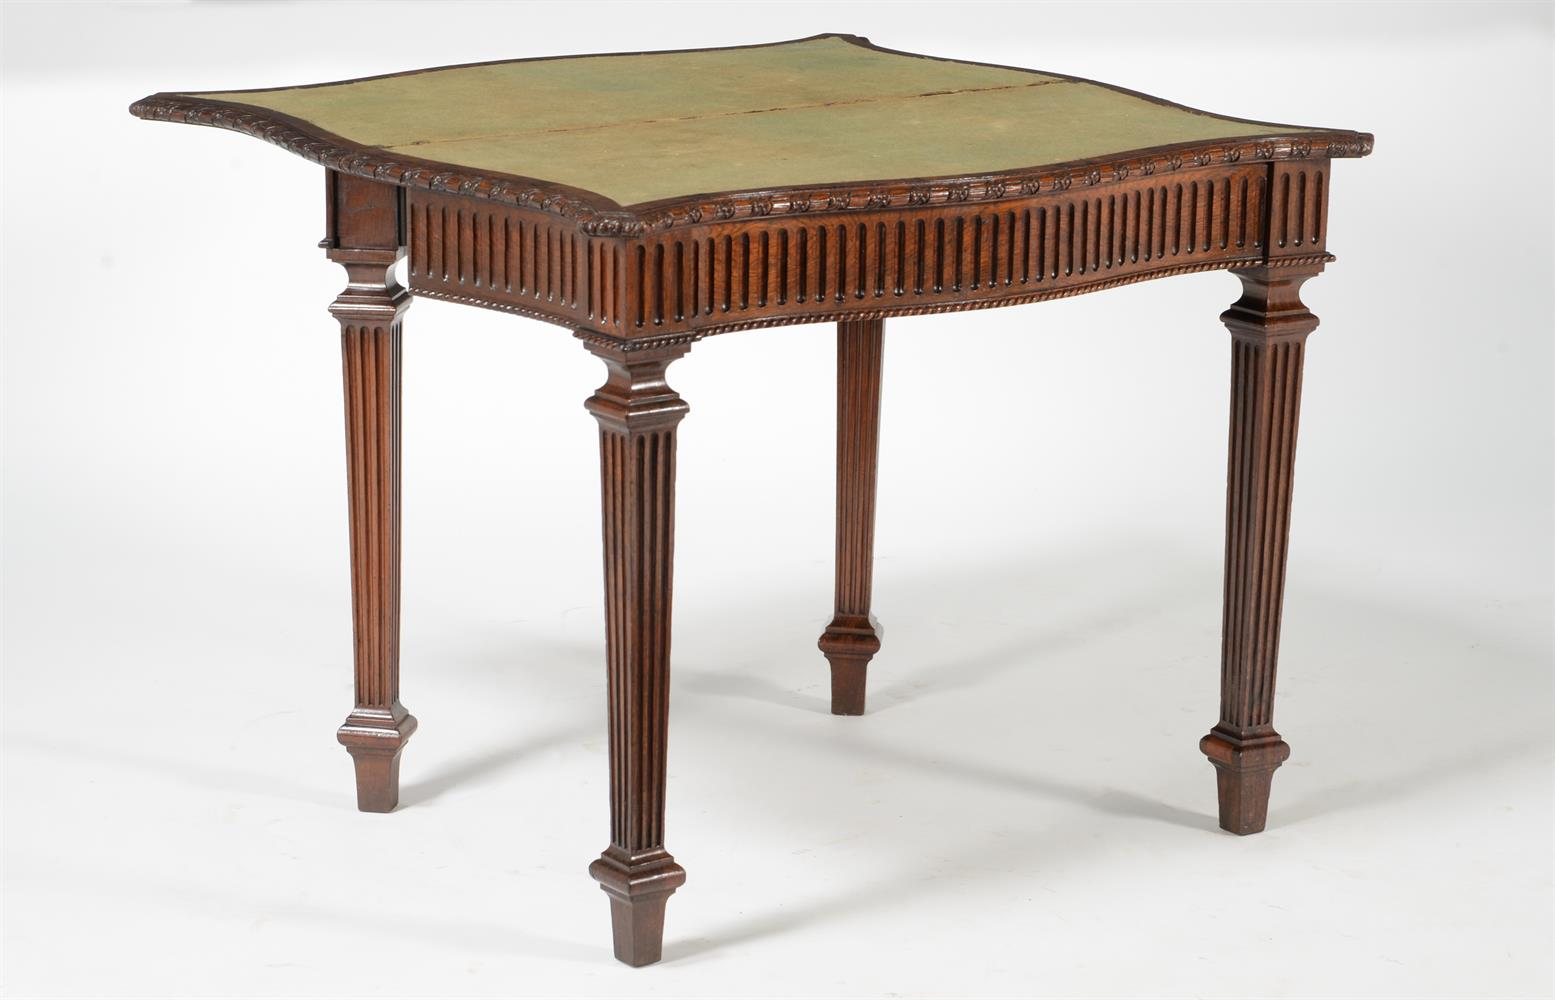 Y A GEORGE IV ROSEWOOD SERPENTINE FOLDING CARD TABLE, CIRCA 1825 - Image 4 of 5